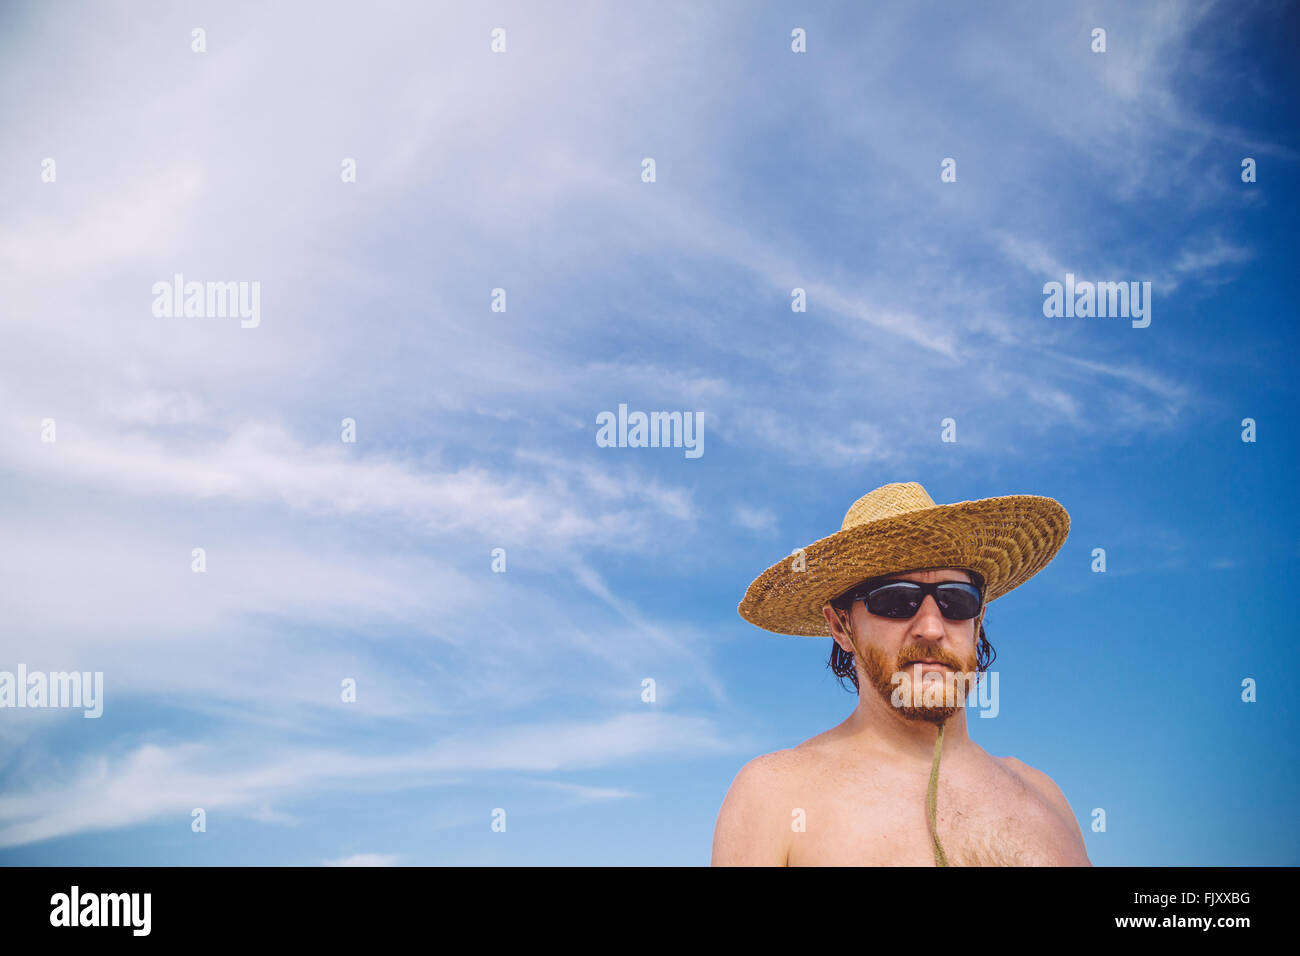 Low Angle View Of Shirtless Man Wearing Hat Against Sky Photo Stock